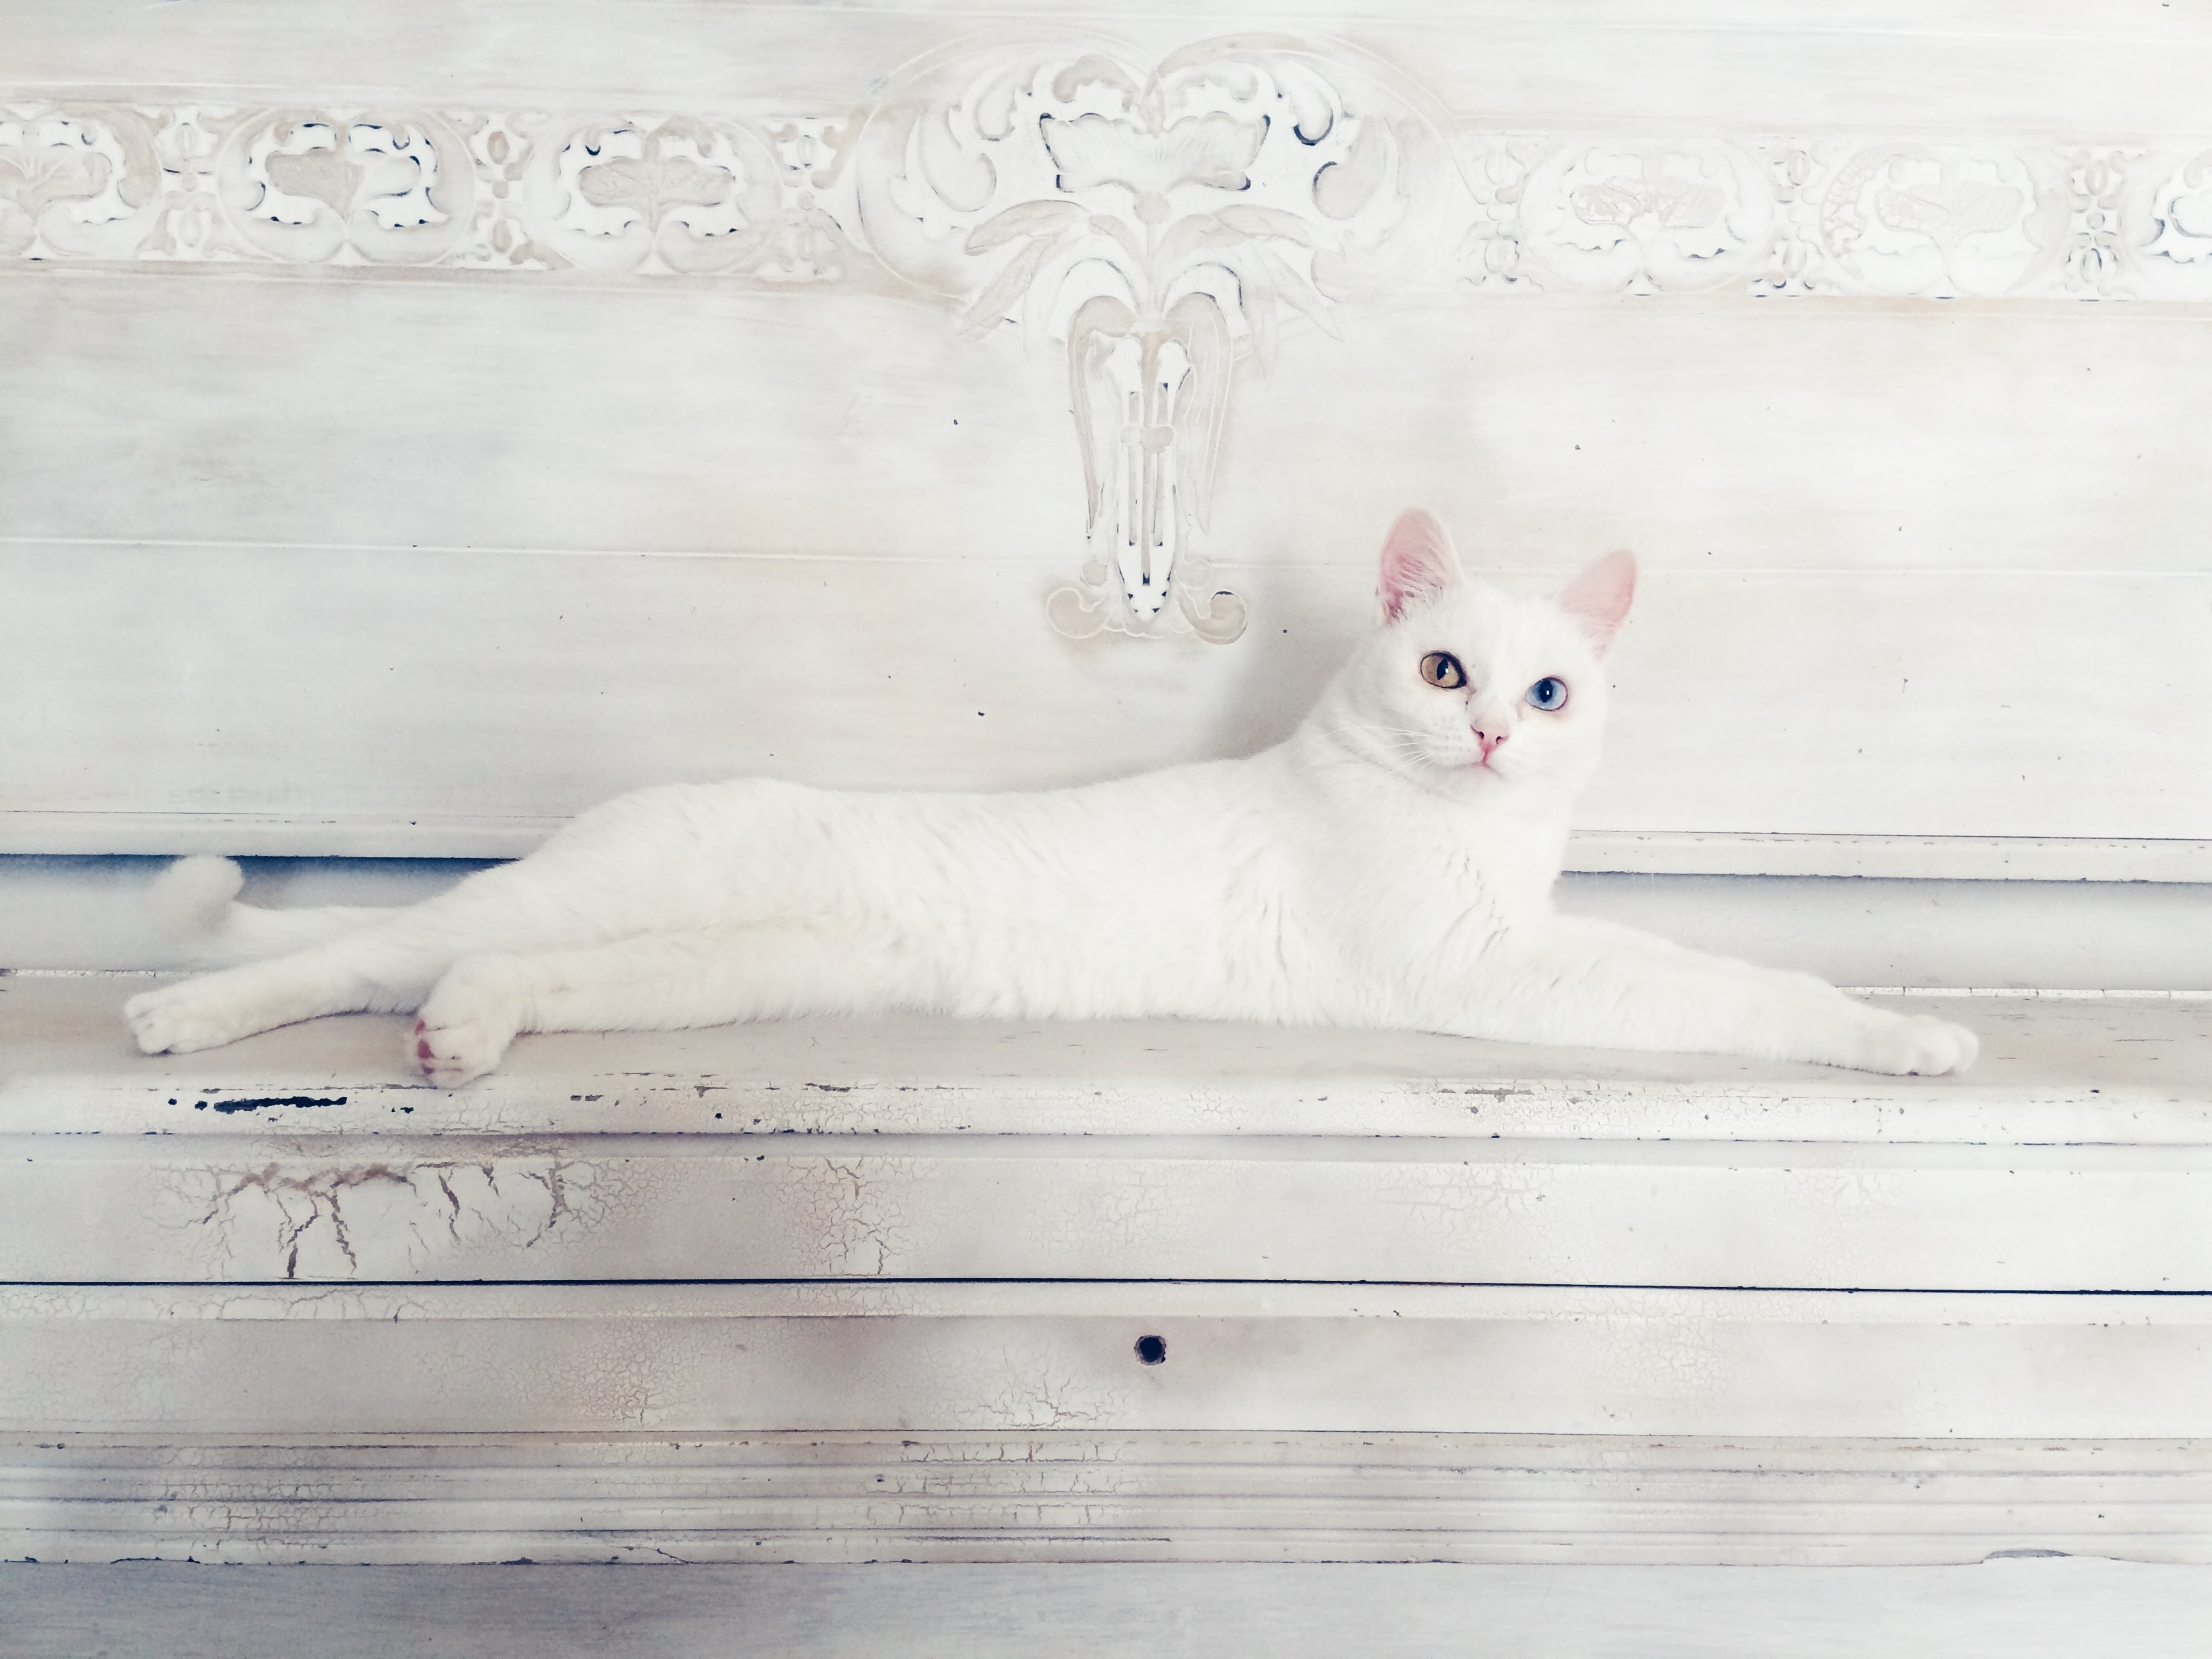 A white cat on a white wooden surface.